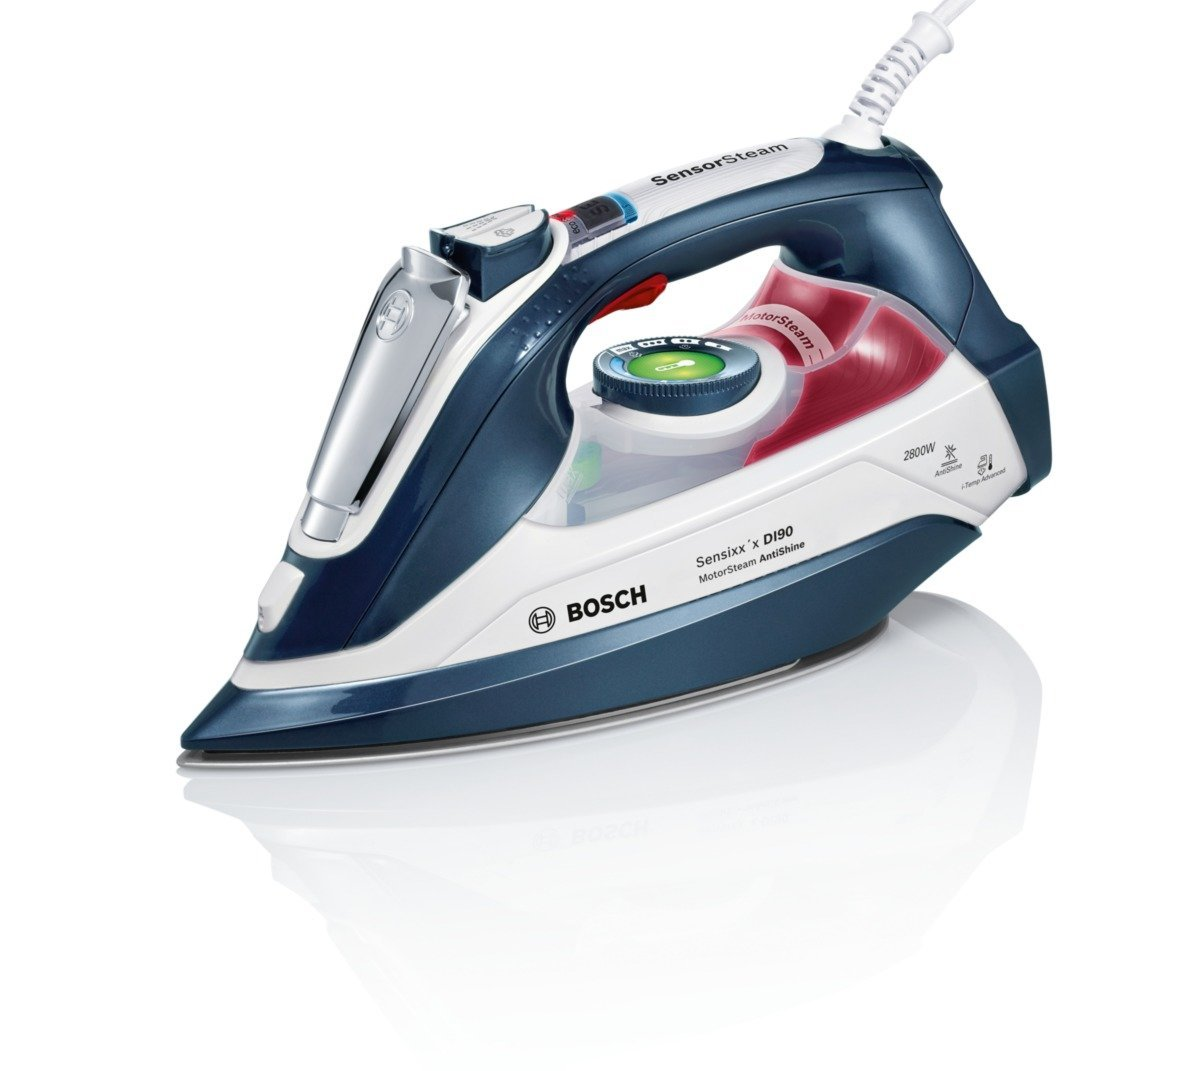 Bosch TDI9010GB Steam Iron